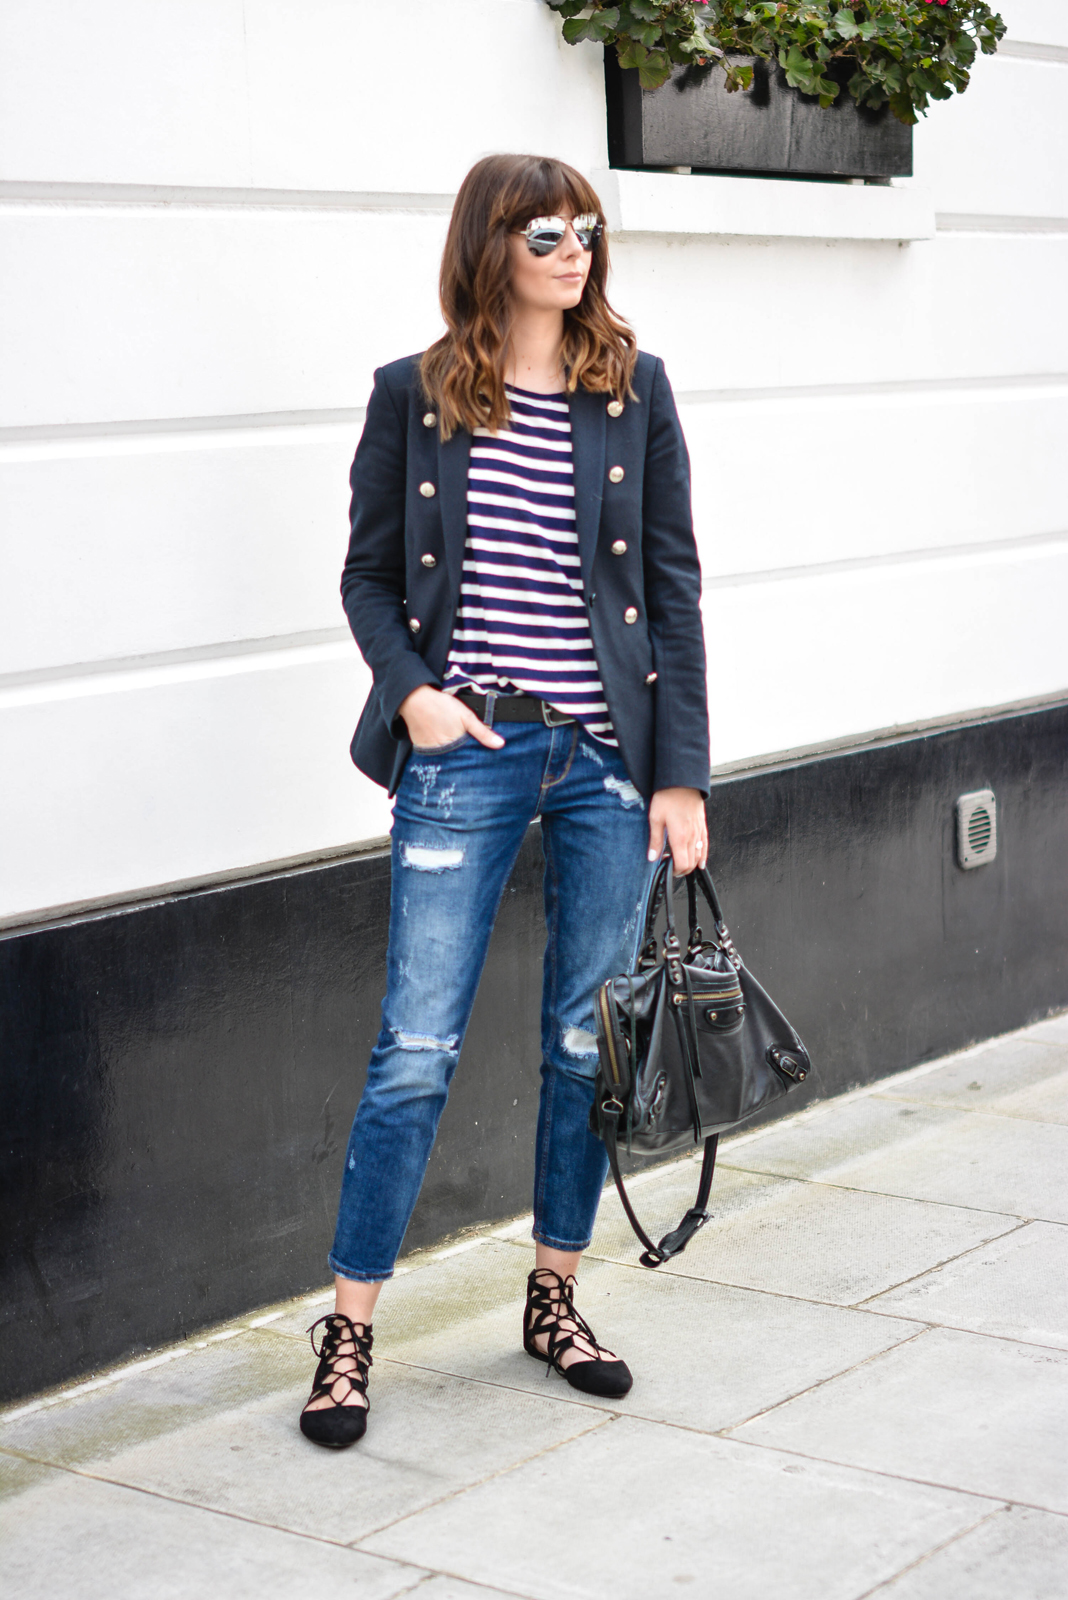 EJSTYLE - Emma Hill, Aquazzura flats dupes, Balenciaga city bag black, Ripped boyfriend jeans, breton stripe top, Superdry muse navy blazer, mirrored sunglasses, OOTD, casual weekend outfit